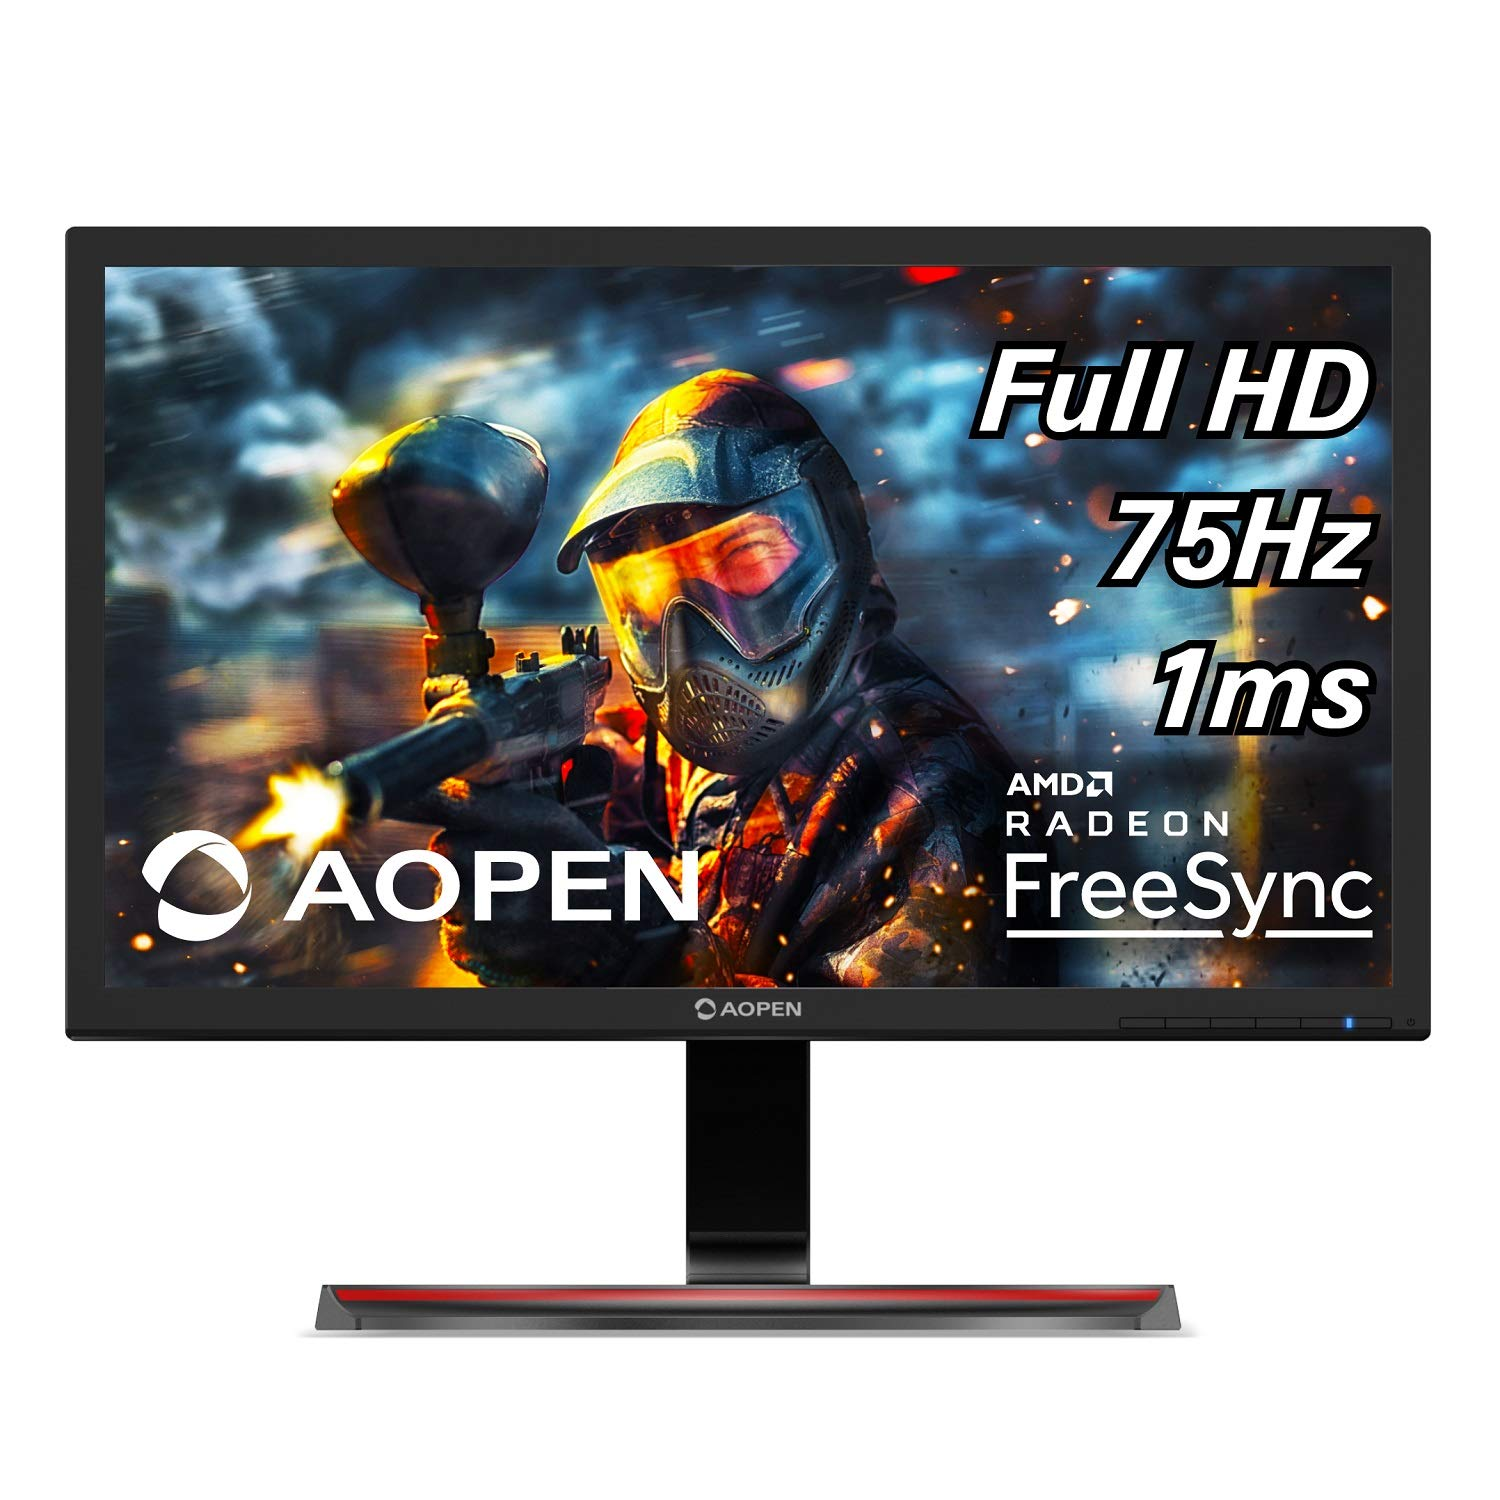 AOPEN 24MX1 bii 24-inch Full HD 1920 x 1080 Gaming Monitor with AMD Radeon FreeSync Technology 2 x HDMI VGA Port